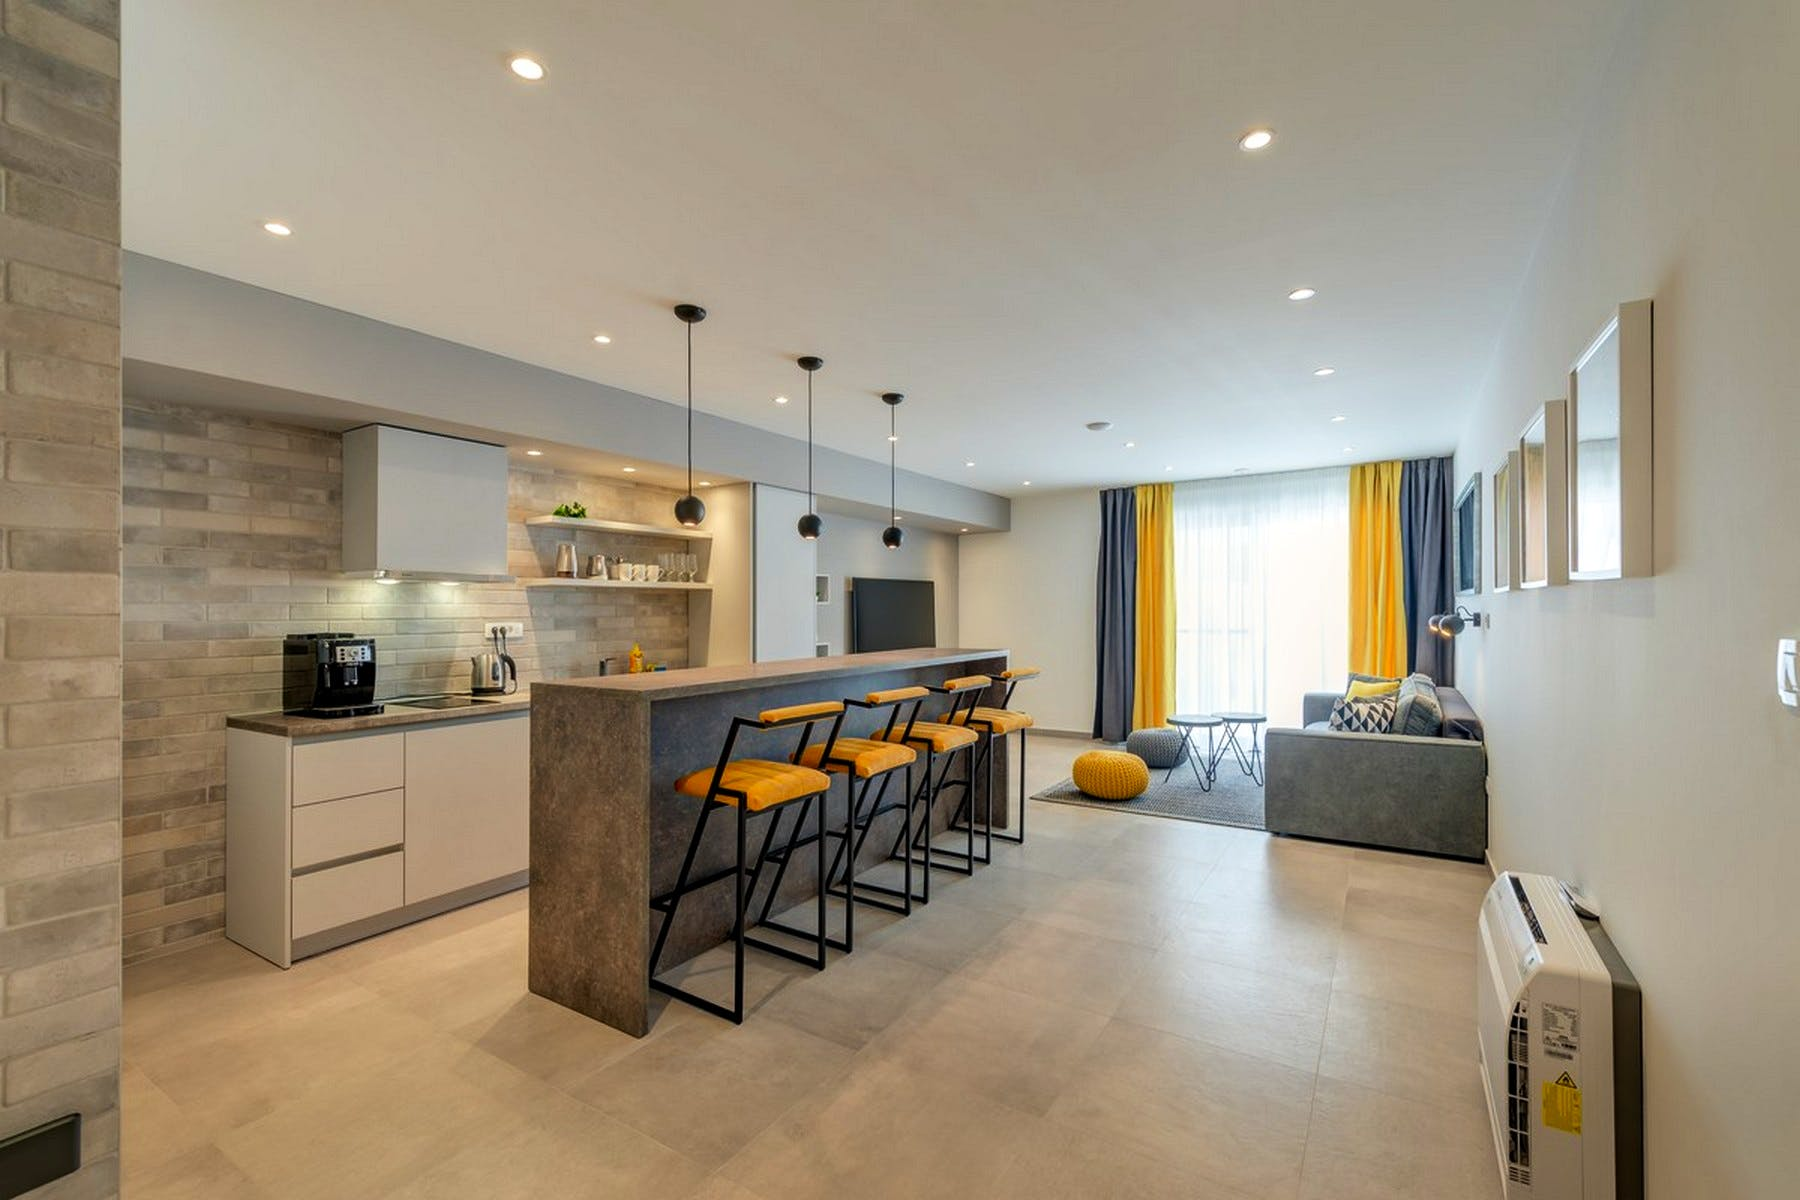 Cooking and dining area ideal for social gatherings